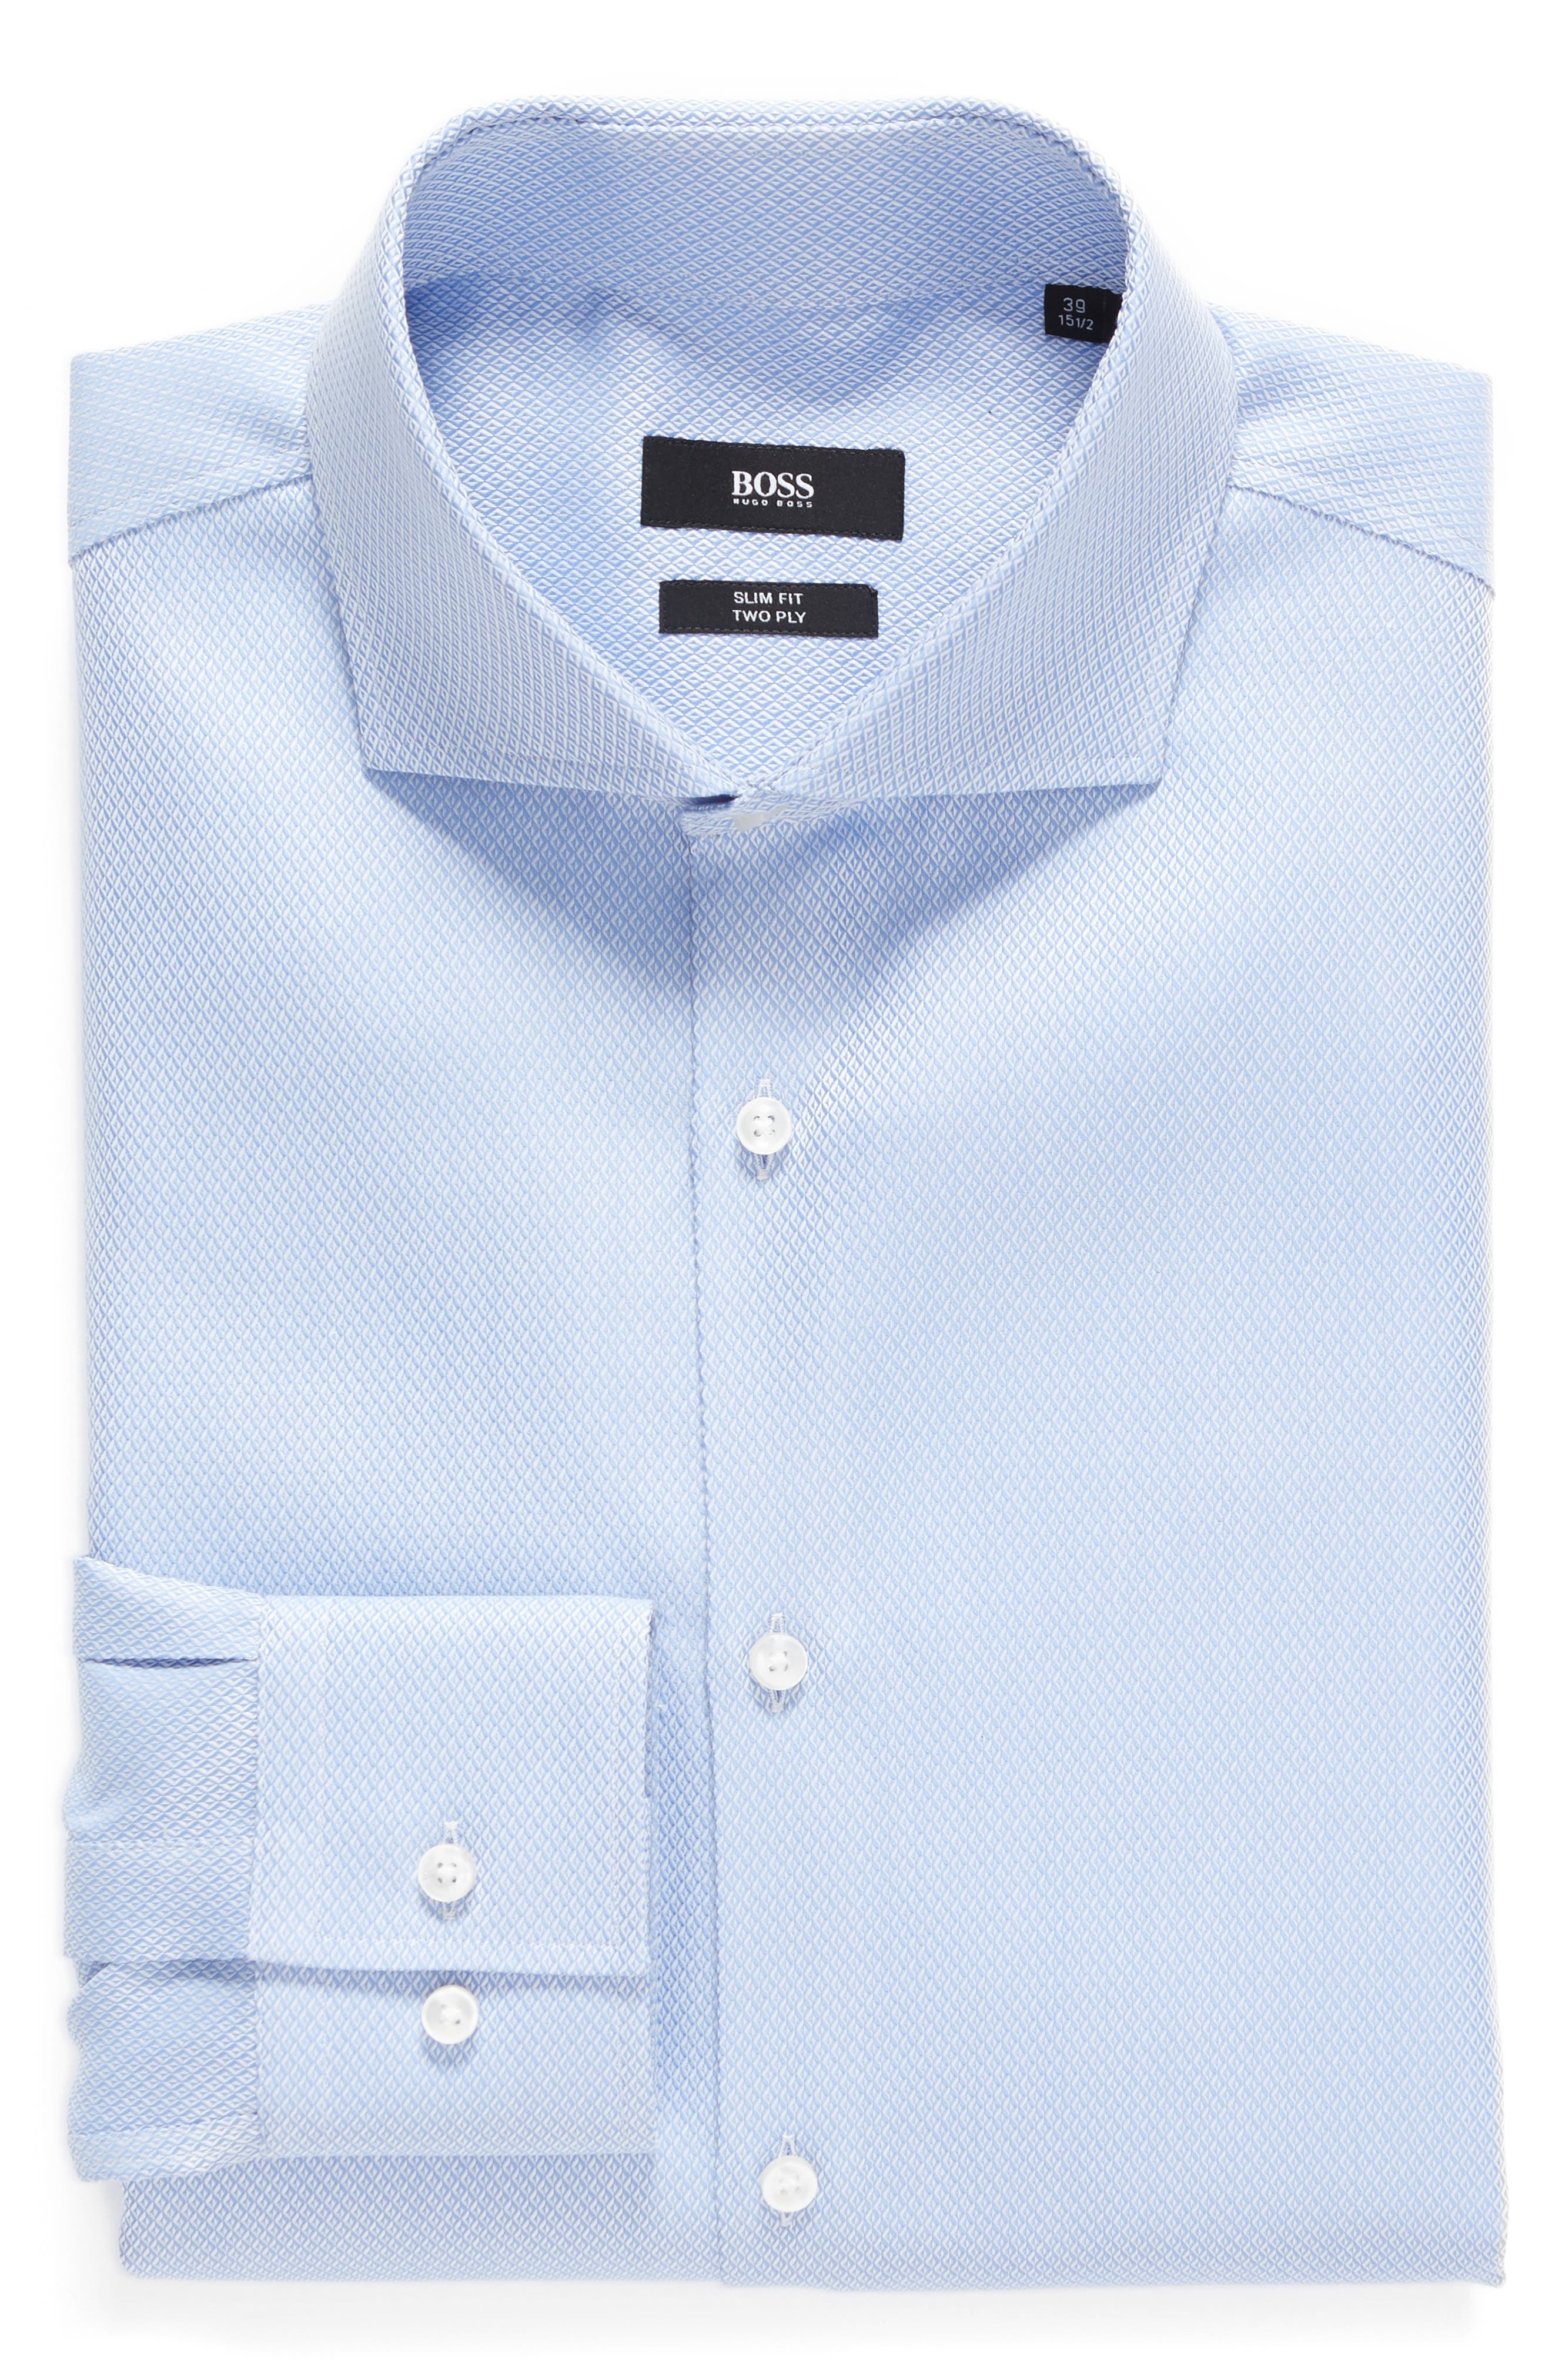 BOSS Slim Fit Solid Dress Shirt